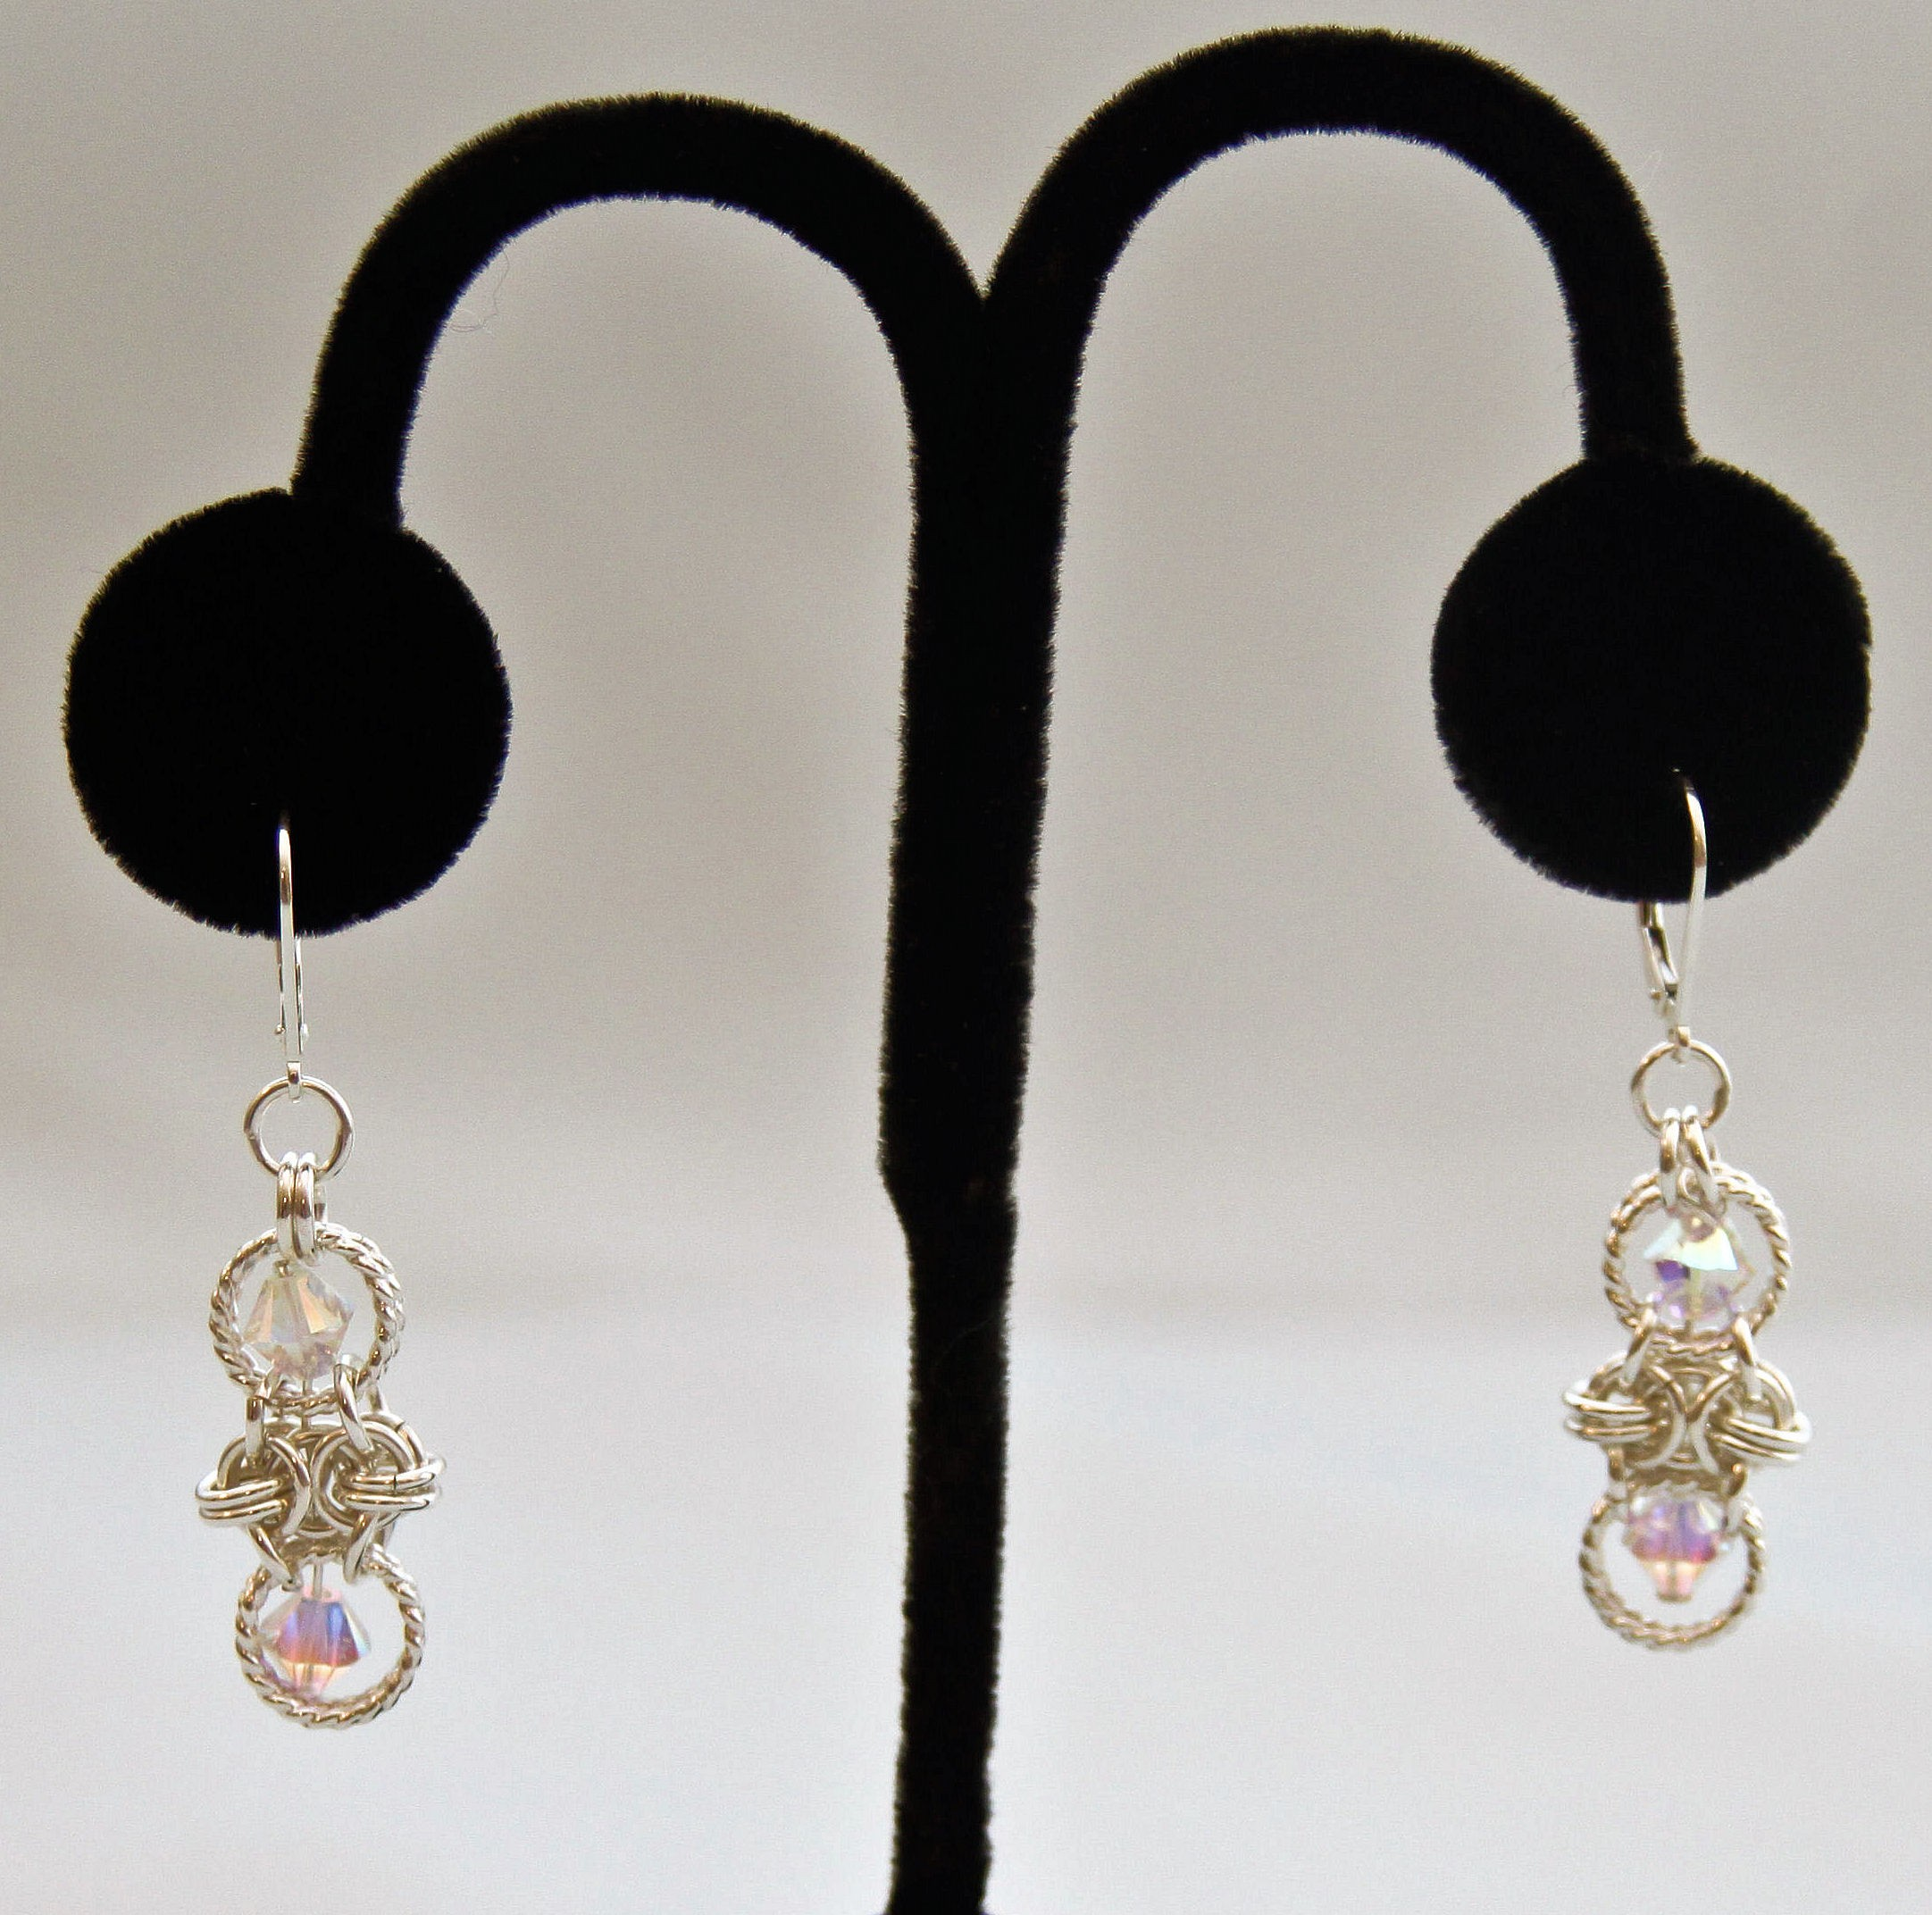 Honeycomb with Bling Earrings